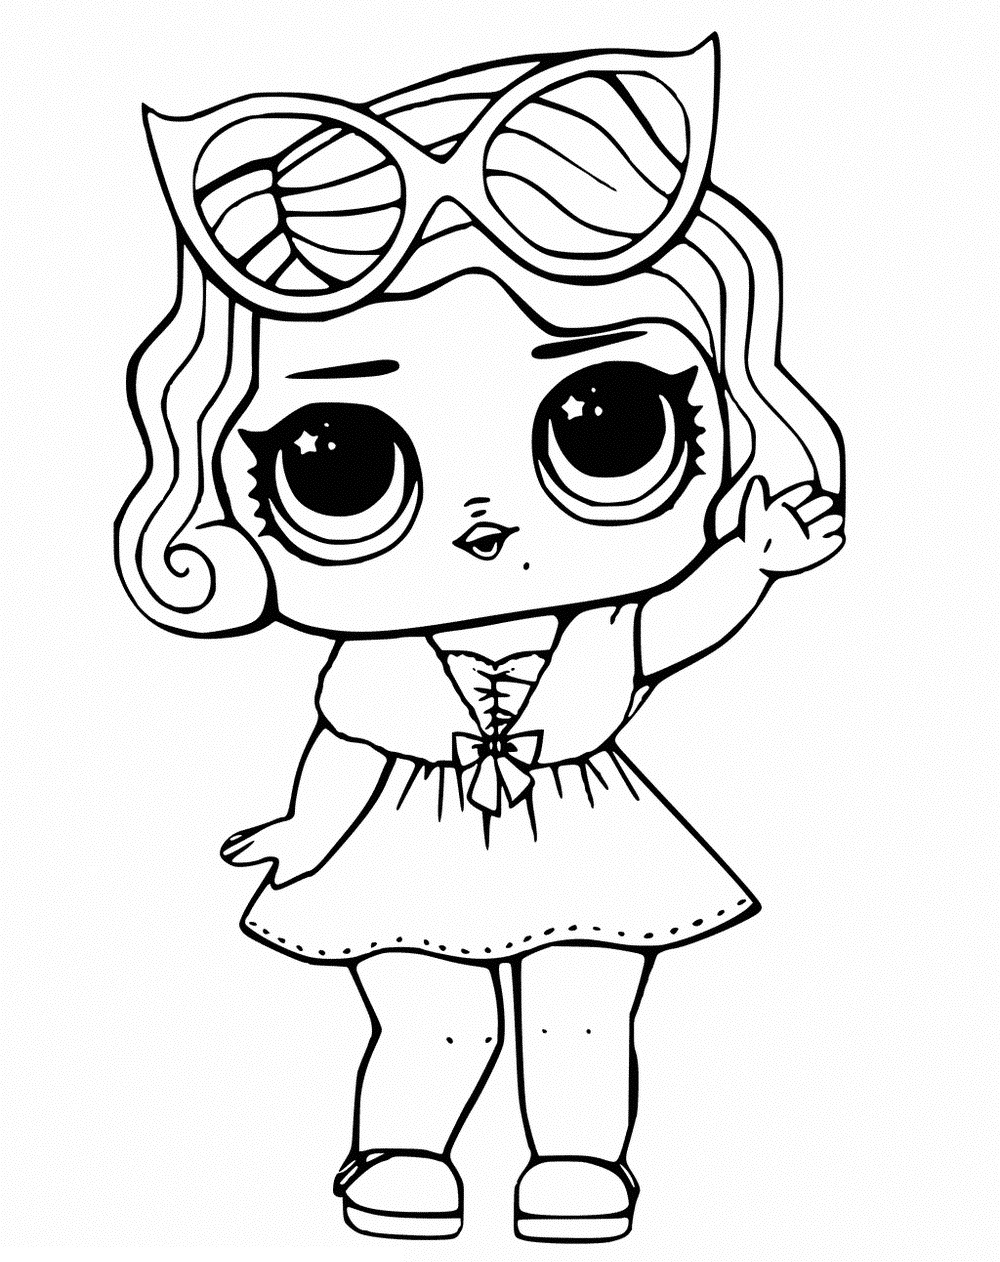 free lol coloring pages LOL Surprise Dolls Coloring Pages. Print out for Free! All the Series! free lol coloring pages